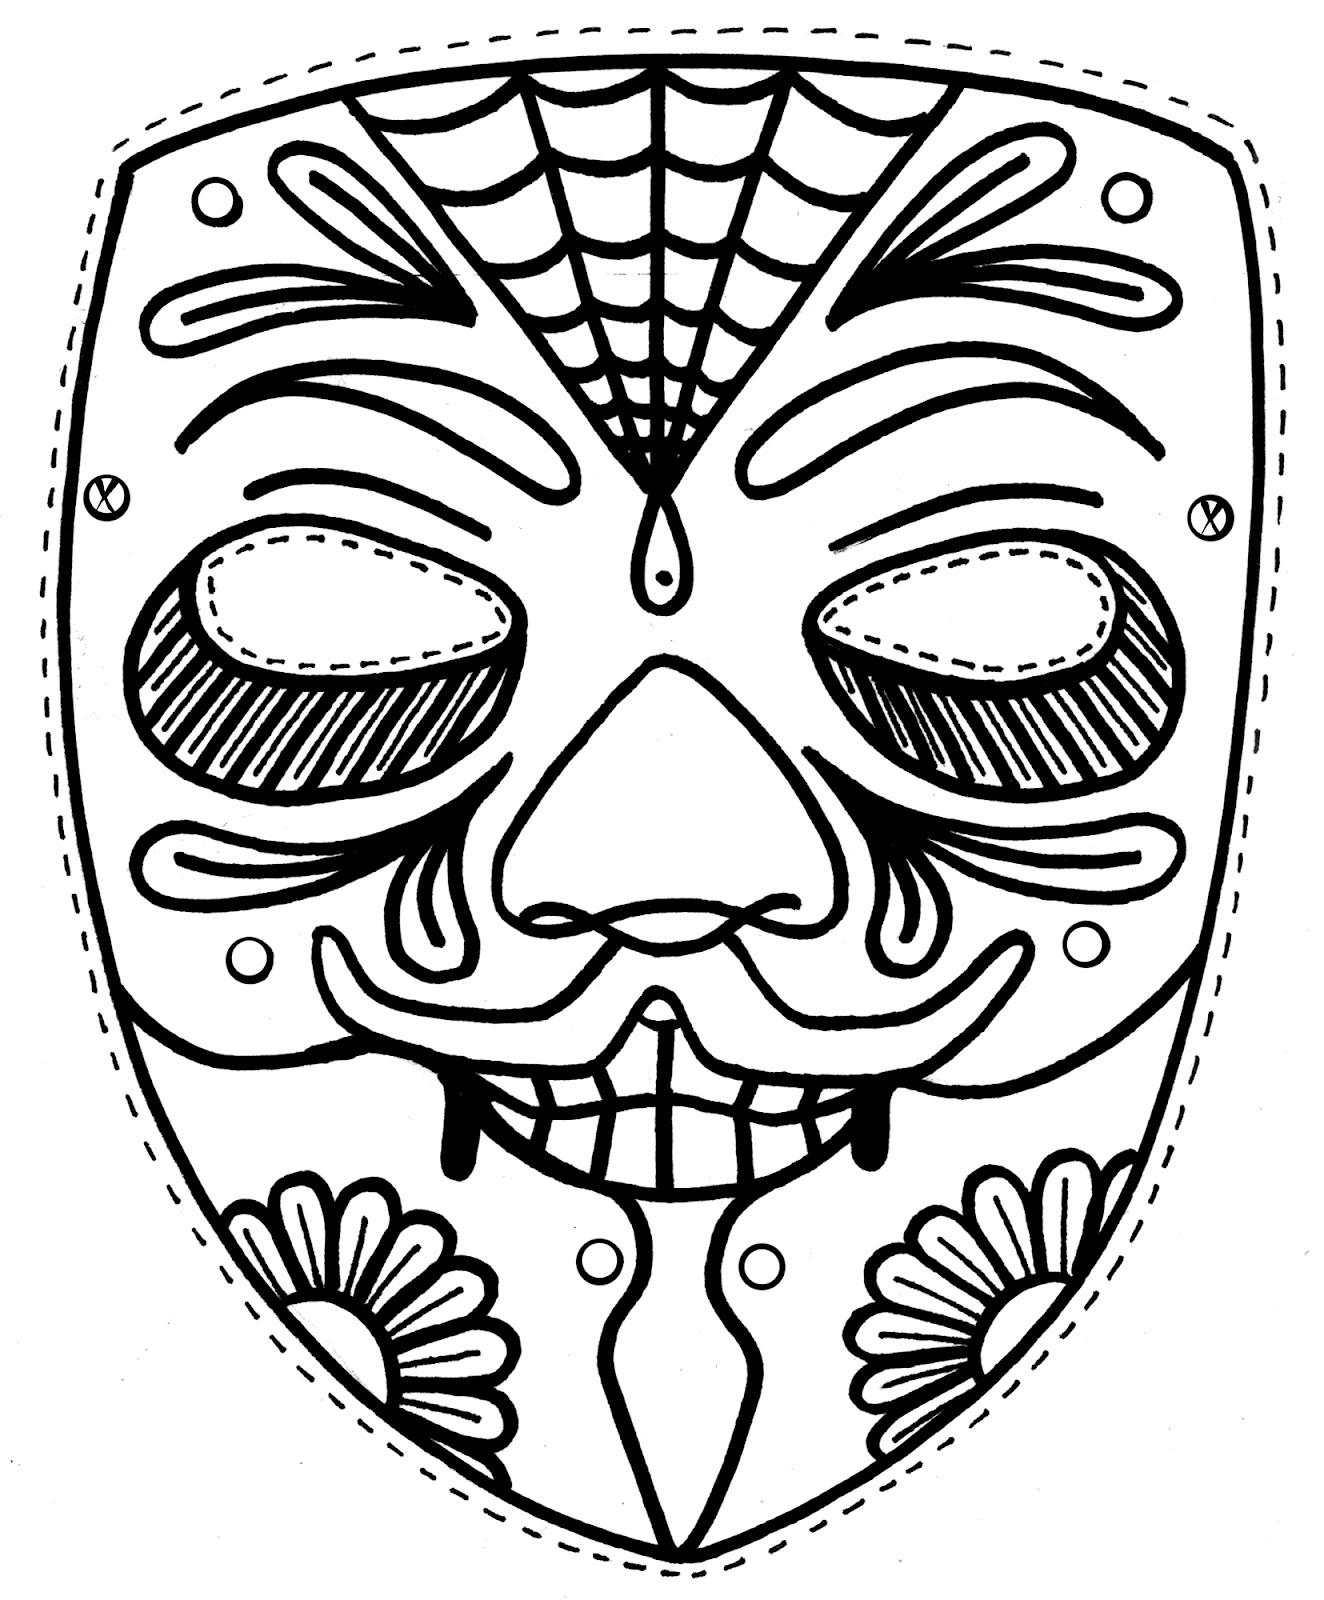 coloring face mask face mask coloring pages at getdrawings free download mask face coloring